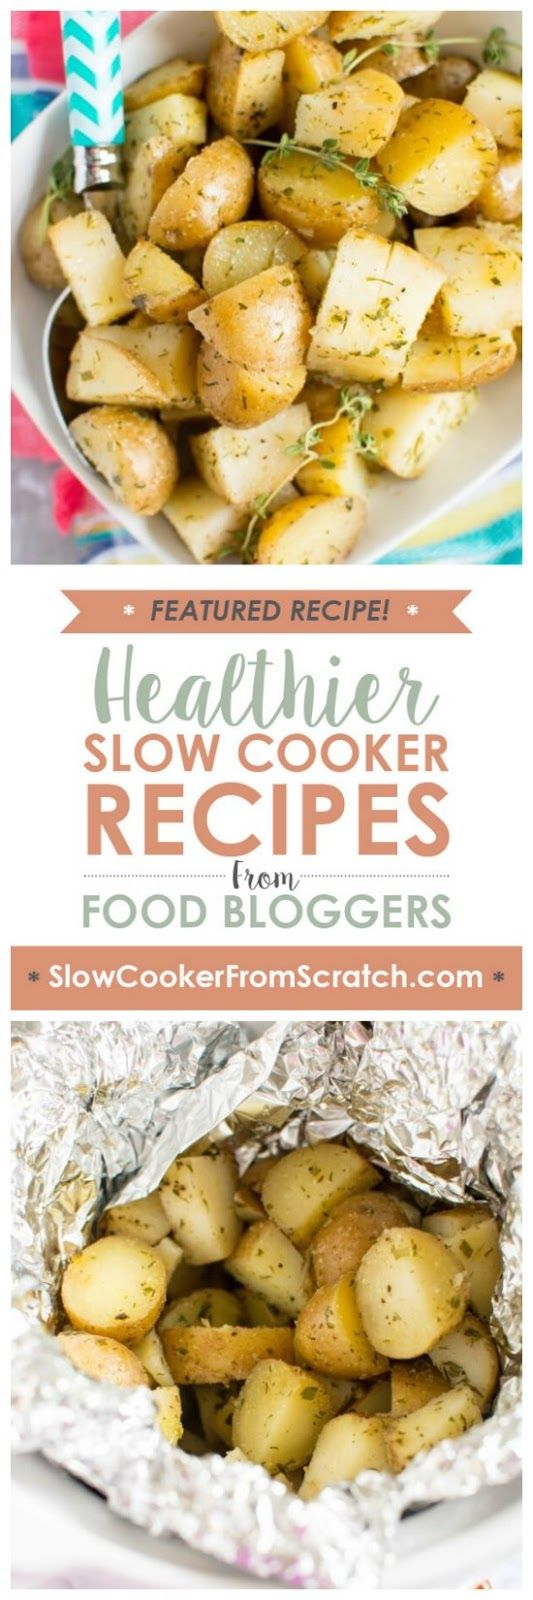 Slow Cooker Ranch Potatoes from Slow Cooker Gourmet have a homemade ranch seasoning mix, no chemicals! And this is perfect for an easy side dish. [featured on SlowCookerFromScratch.com]